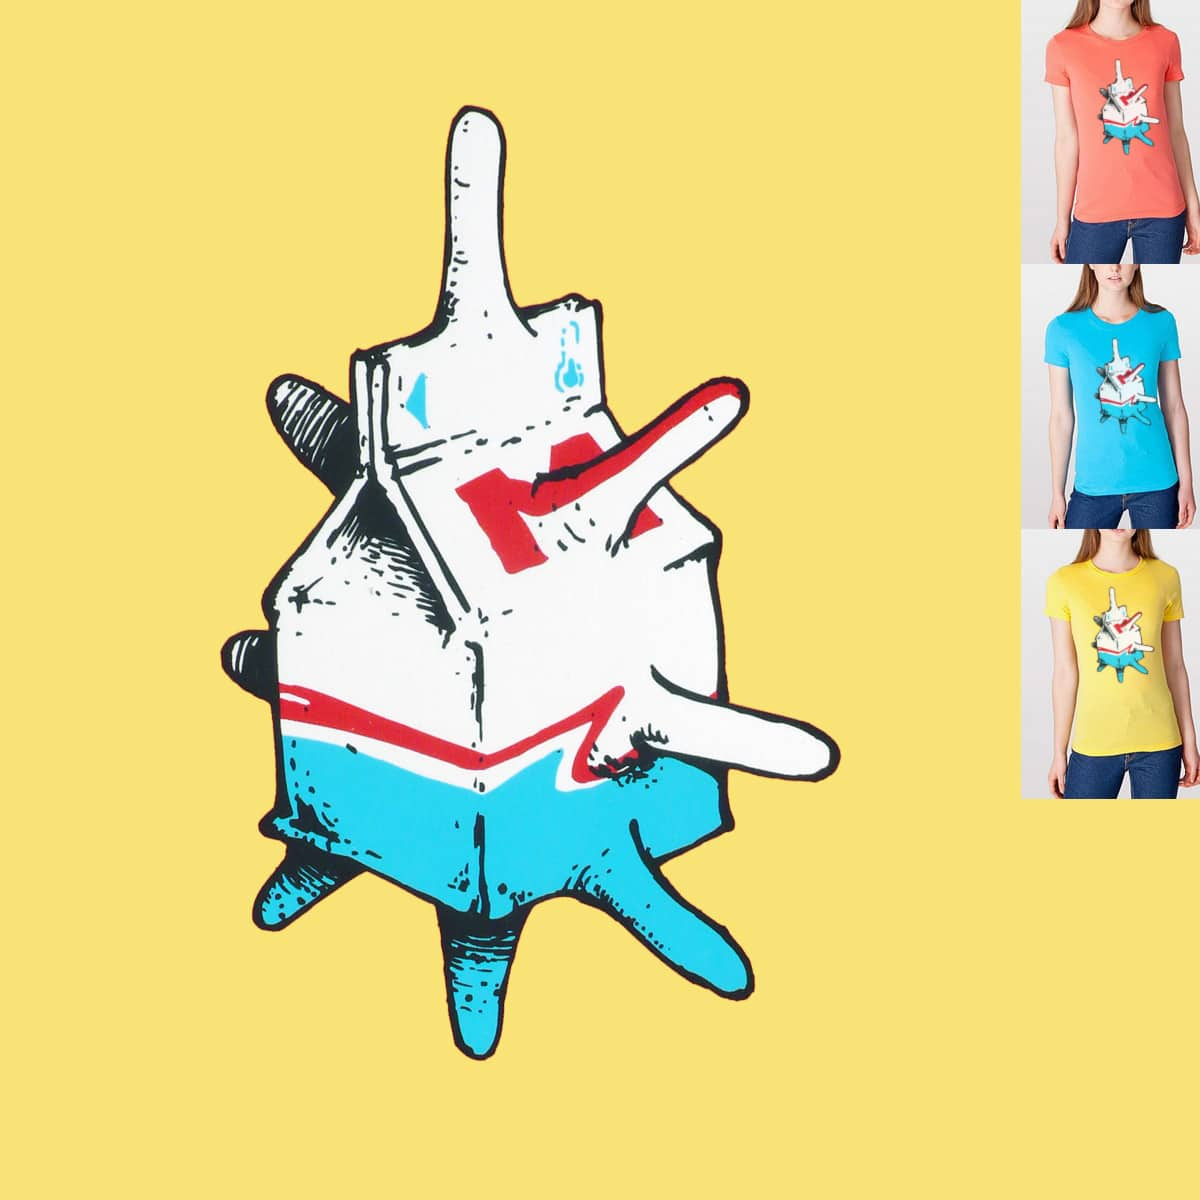 Mmmmmetaphor! by danrule on Threadless